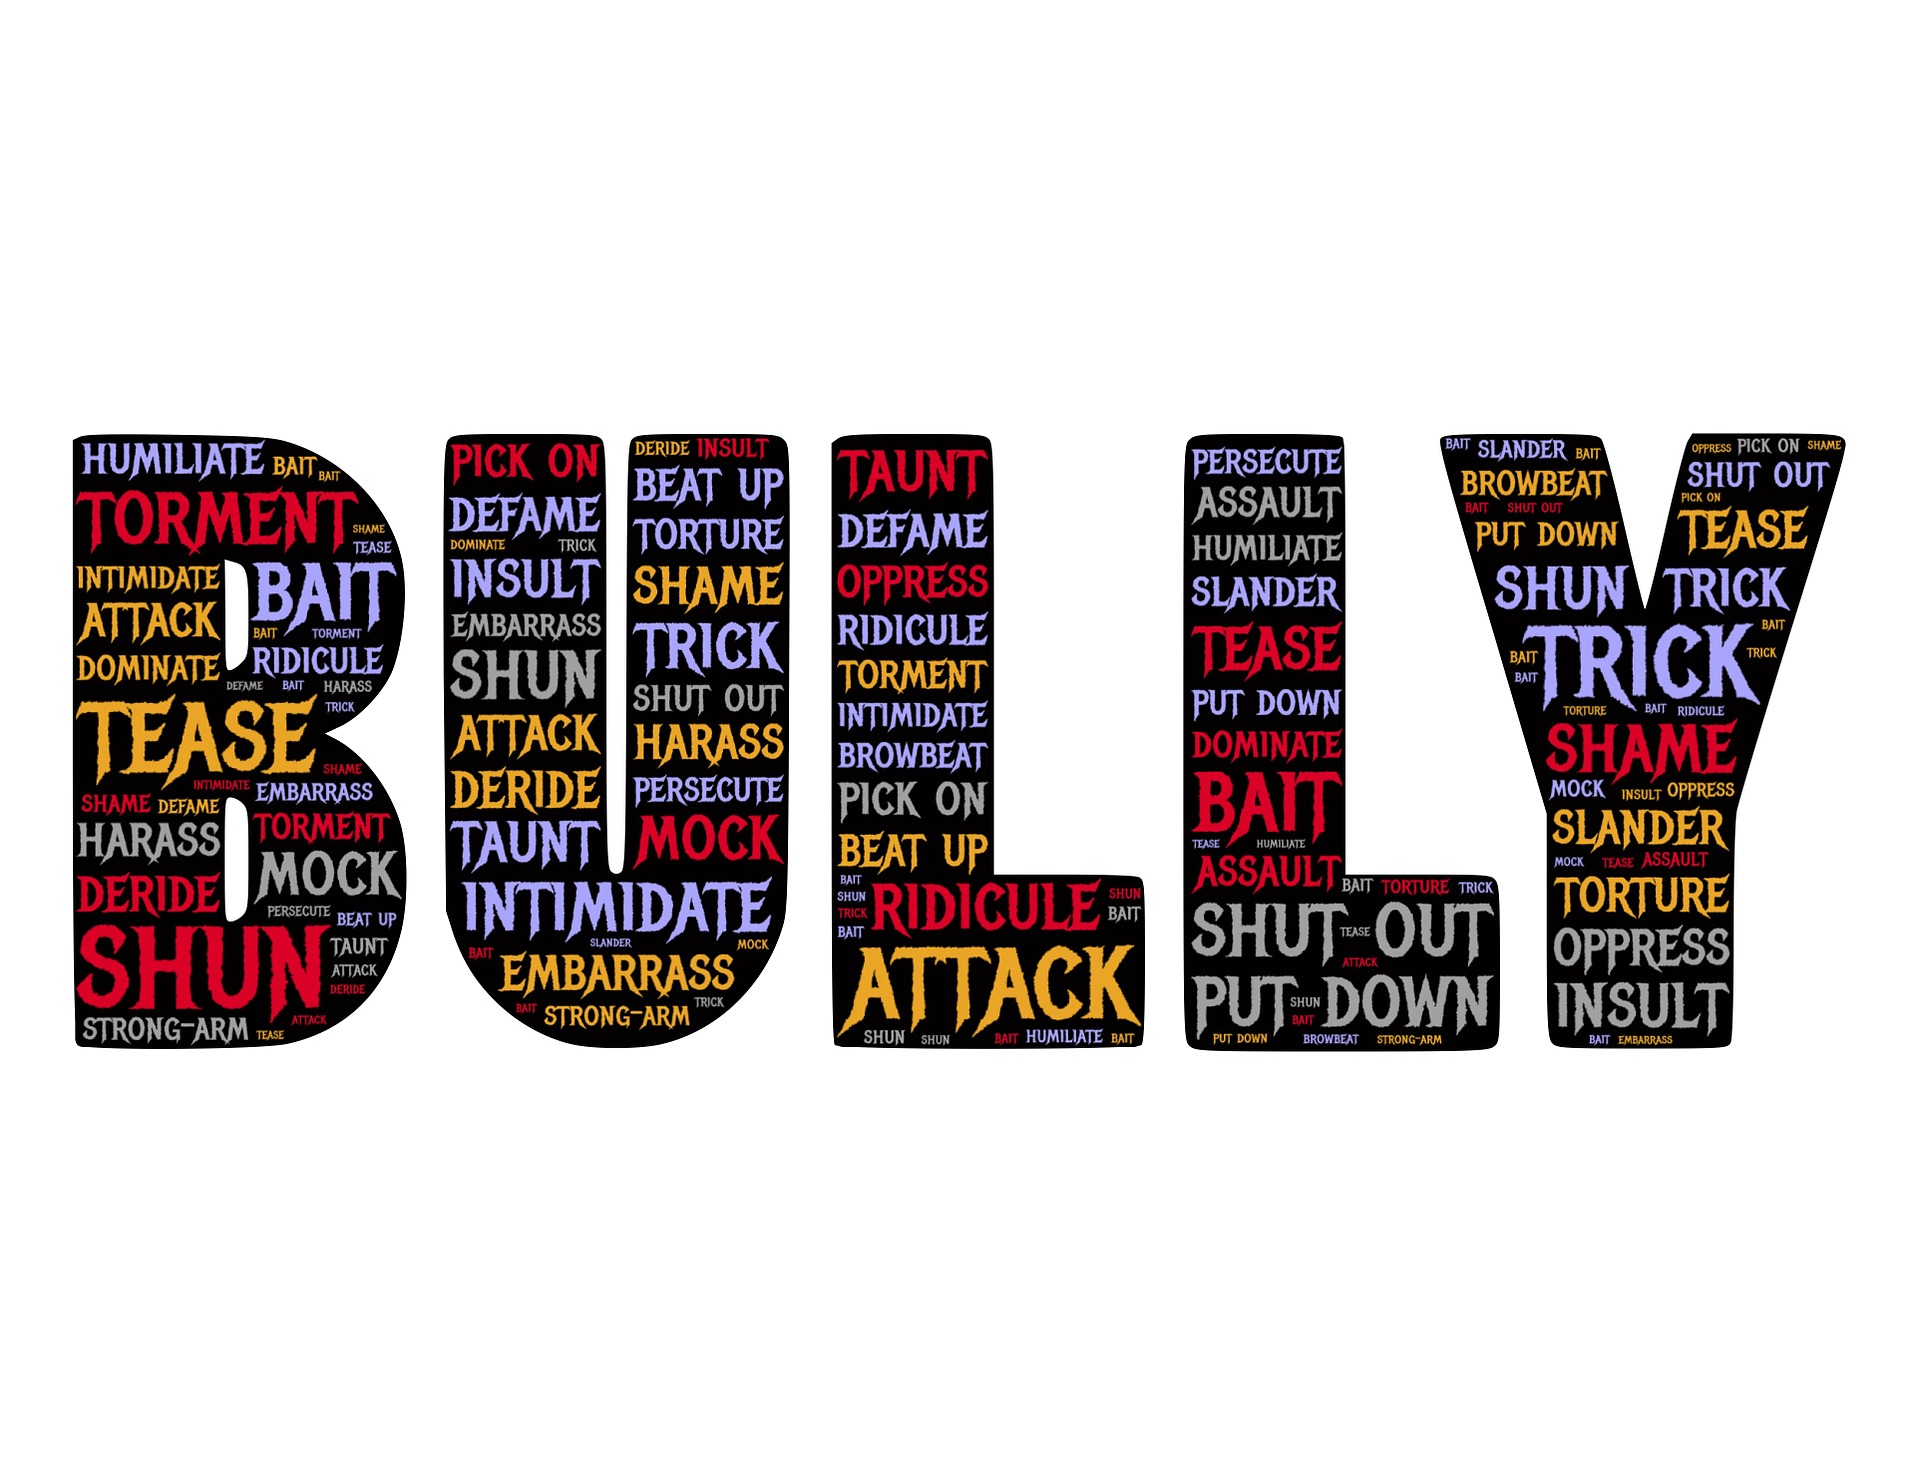 Bullying And Students With Disabilities >> Bullying Of Students With Disabilities An Epidemic In Our Schools